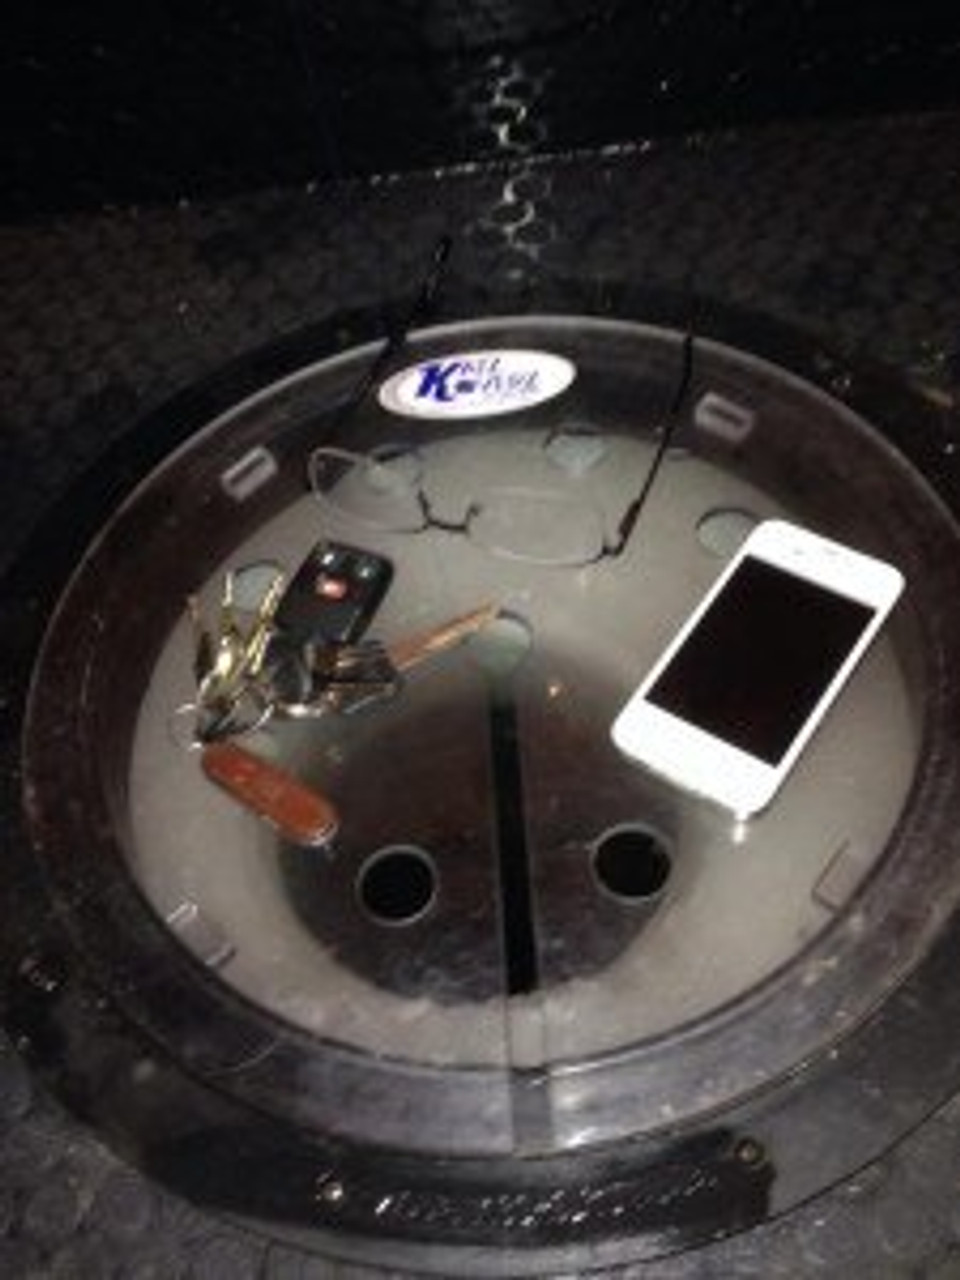 katz kovers for FISH HOLE BUDDY ONLY PRODUCTS protect your valuables from going down the hole